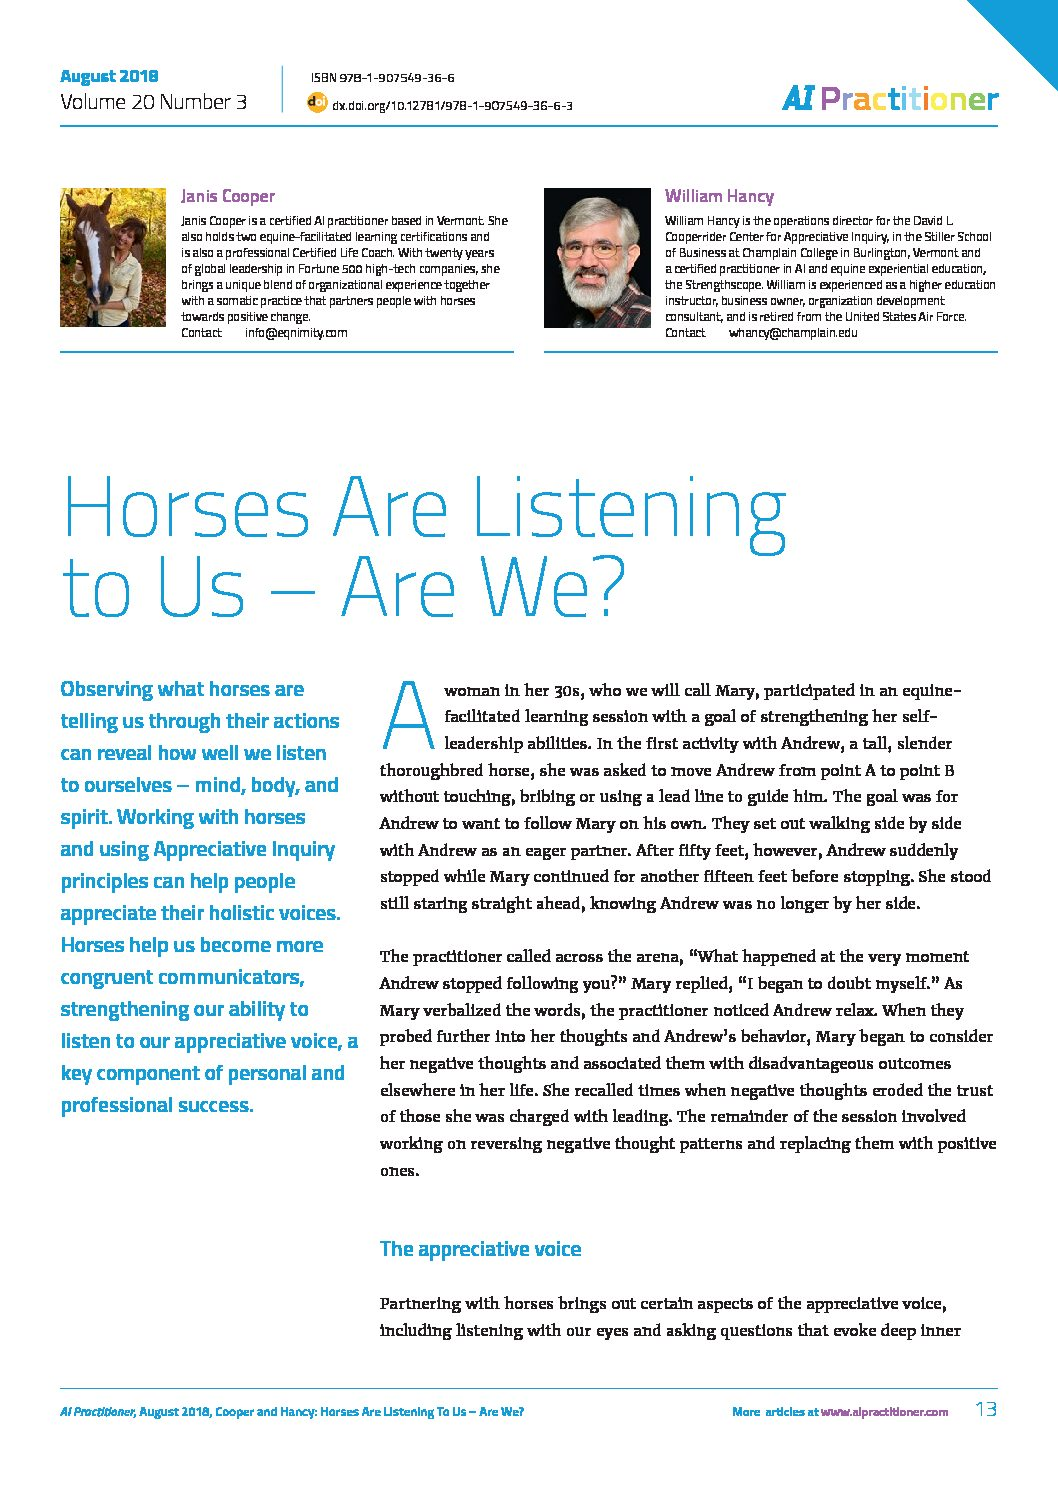 aip-august18-appreciative-voice-horses-and-ai